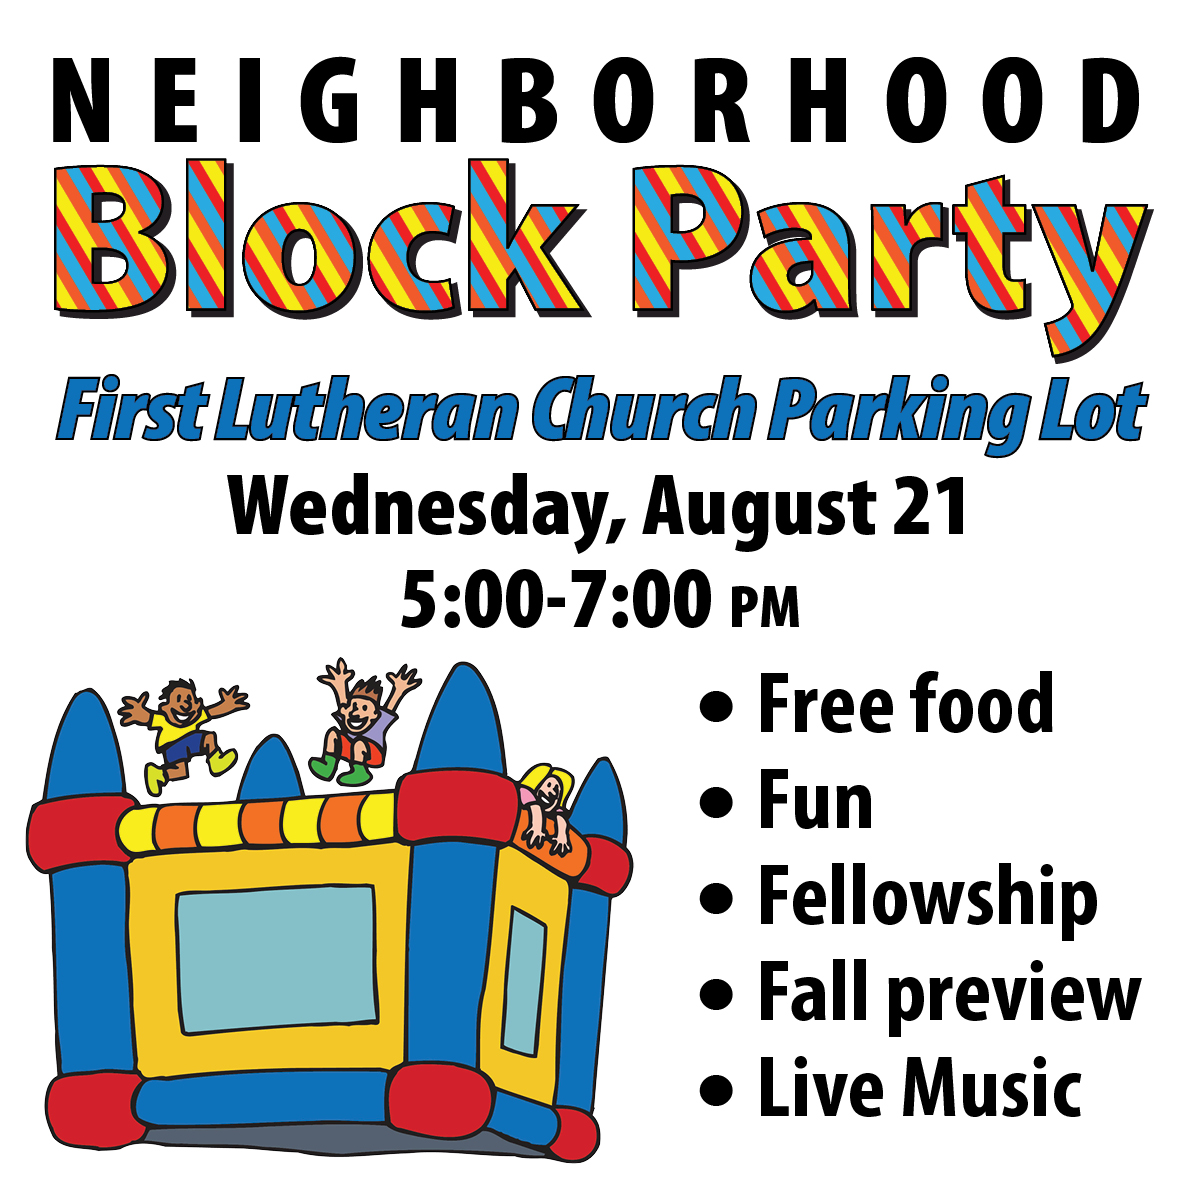 Block Party Ad Square.jpg